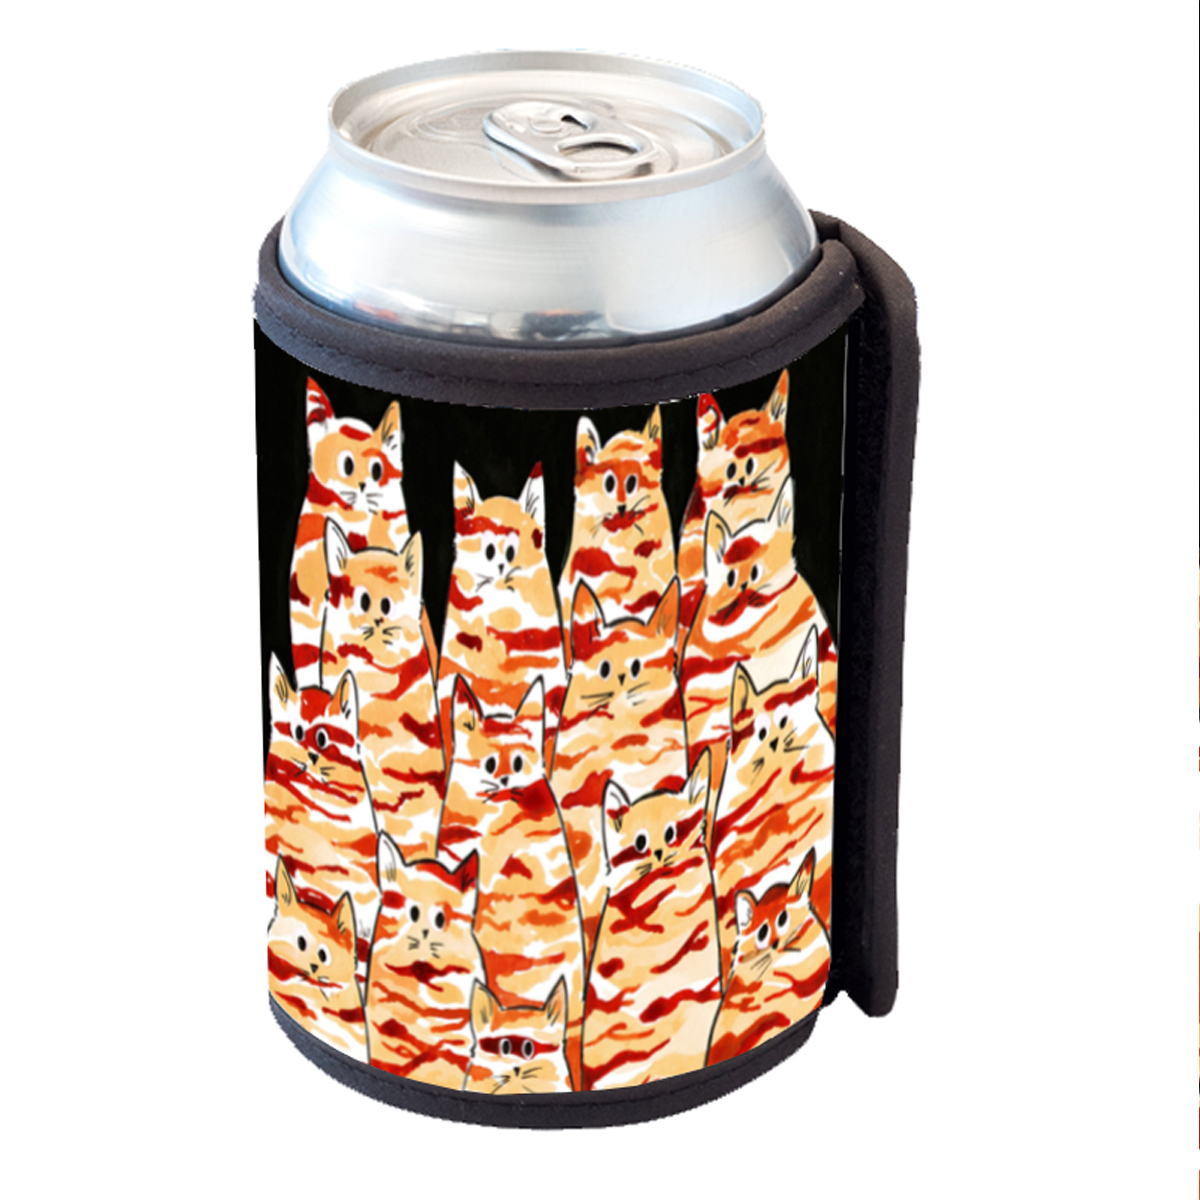 KuzmarK Insulated Drink Can Cooler Hugger - Earth Tones Camo Camouflage Kitties Abstract Cat Art by Denise Every